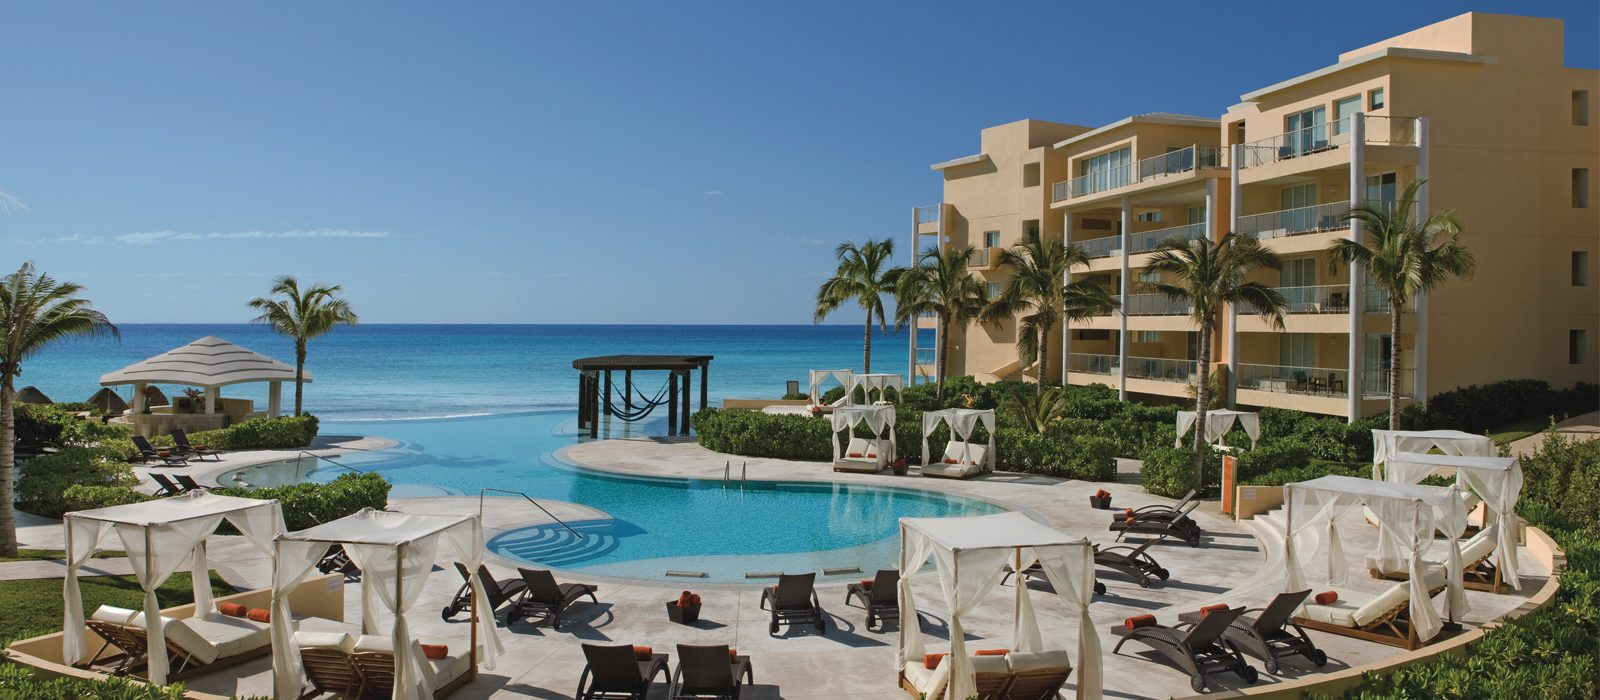 Luxury Mexico Holiday Packages Now Jade Riviera Cancun Header